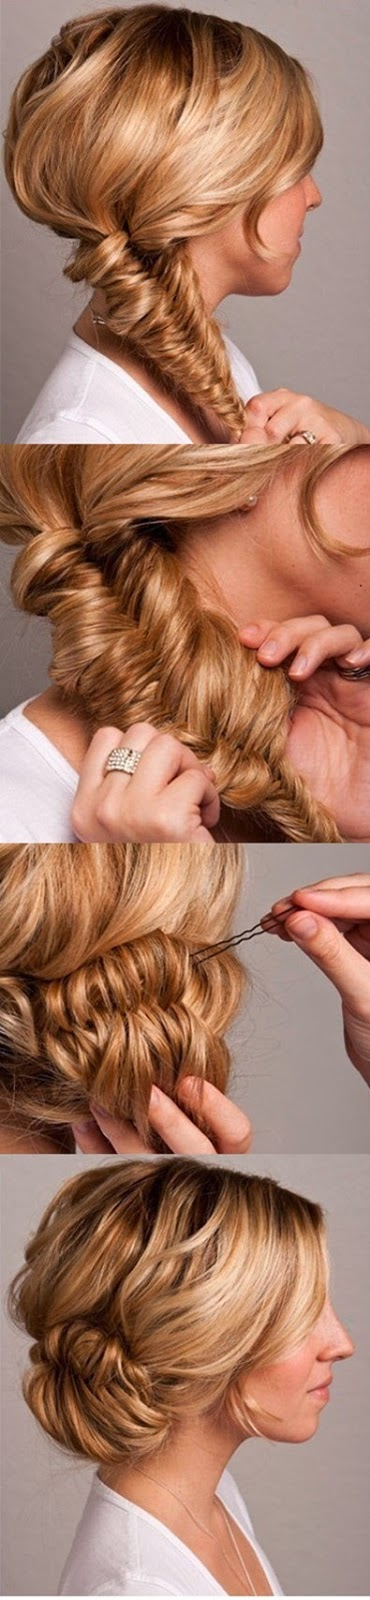 Örgü Saç Braid Hair